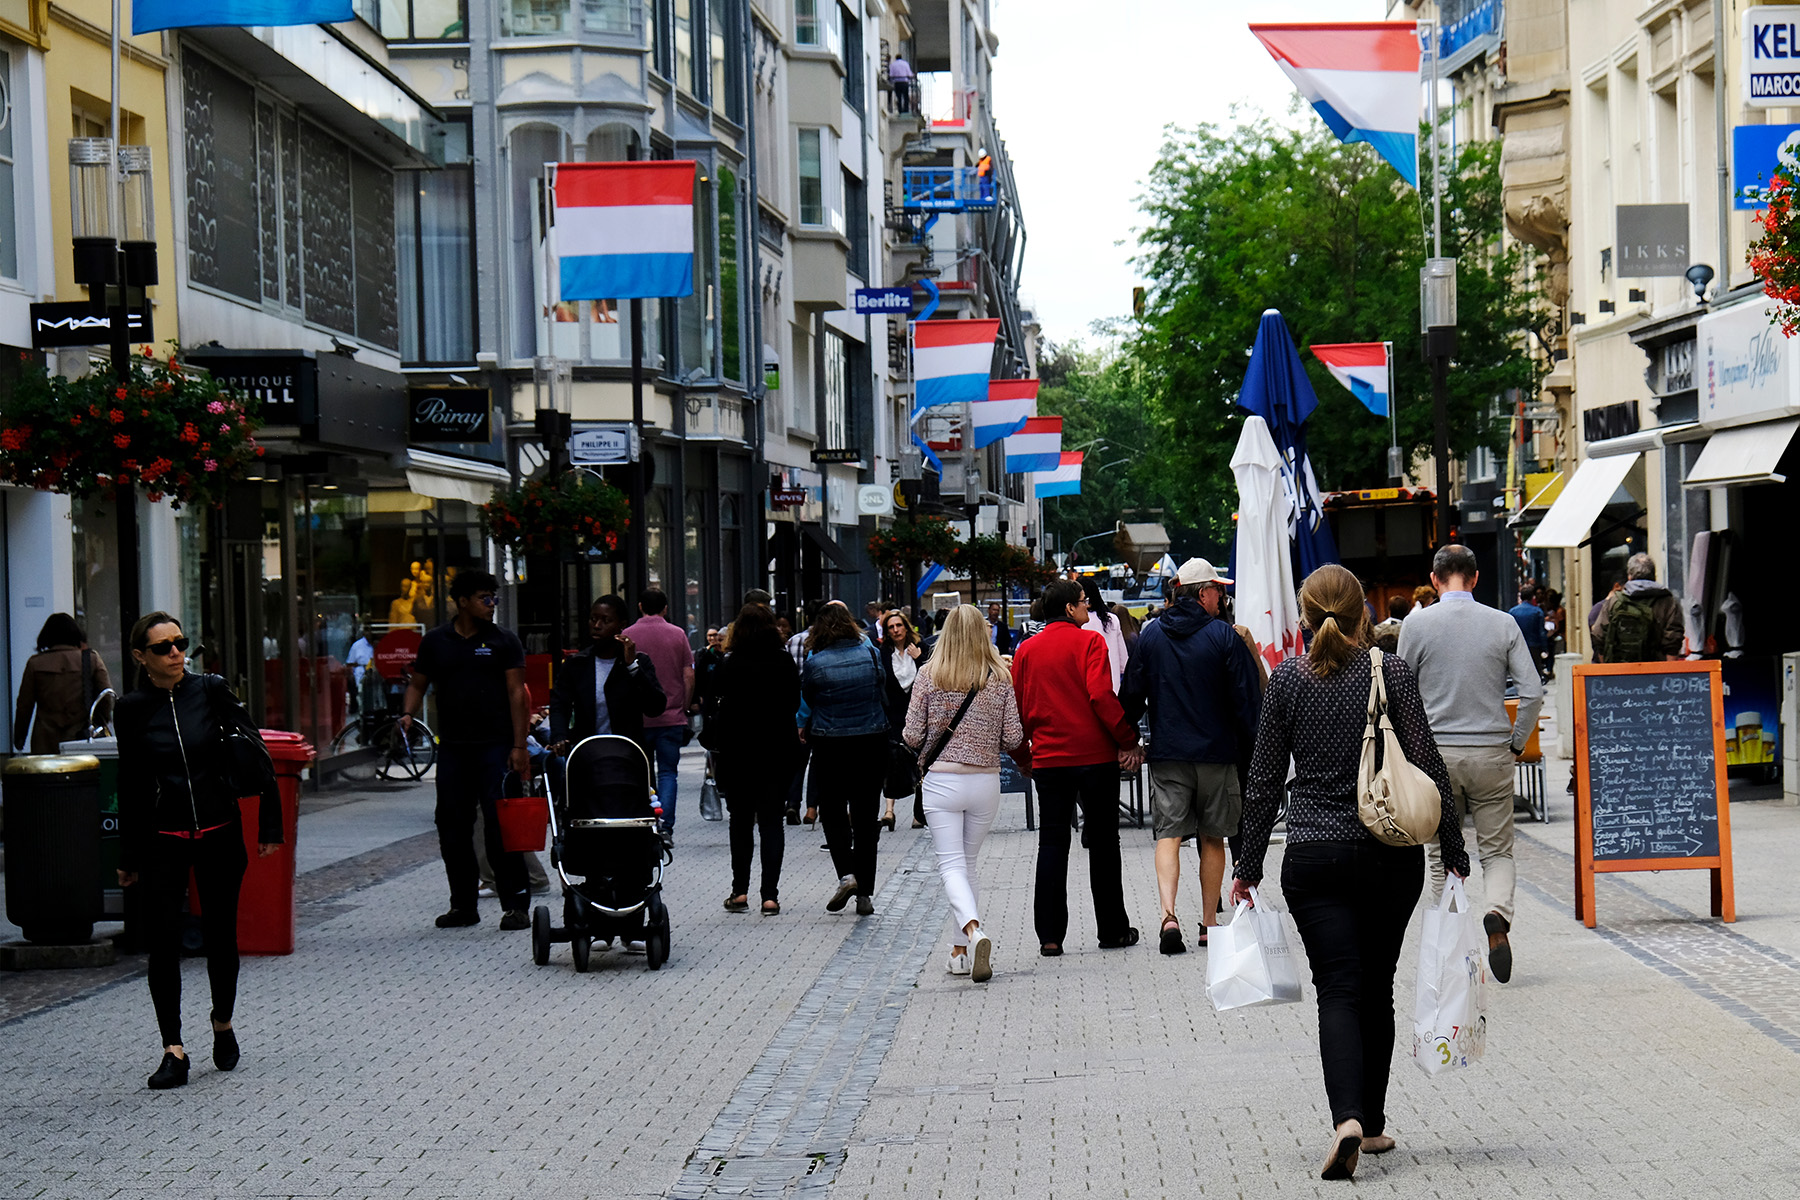 A busy street in Luxembourg City